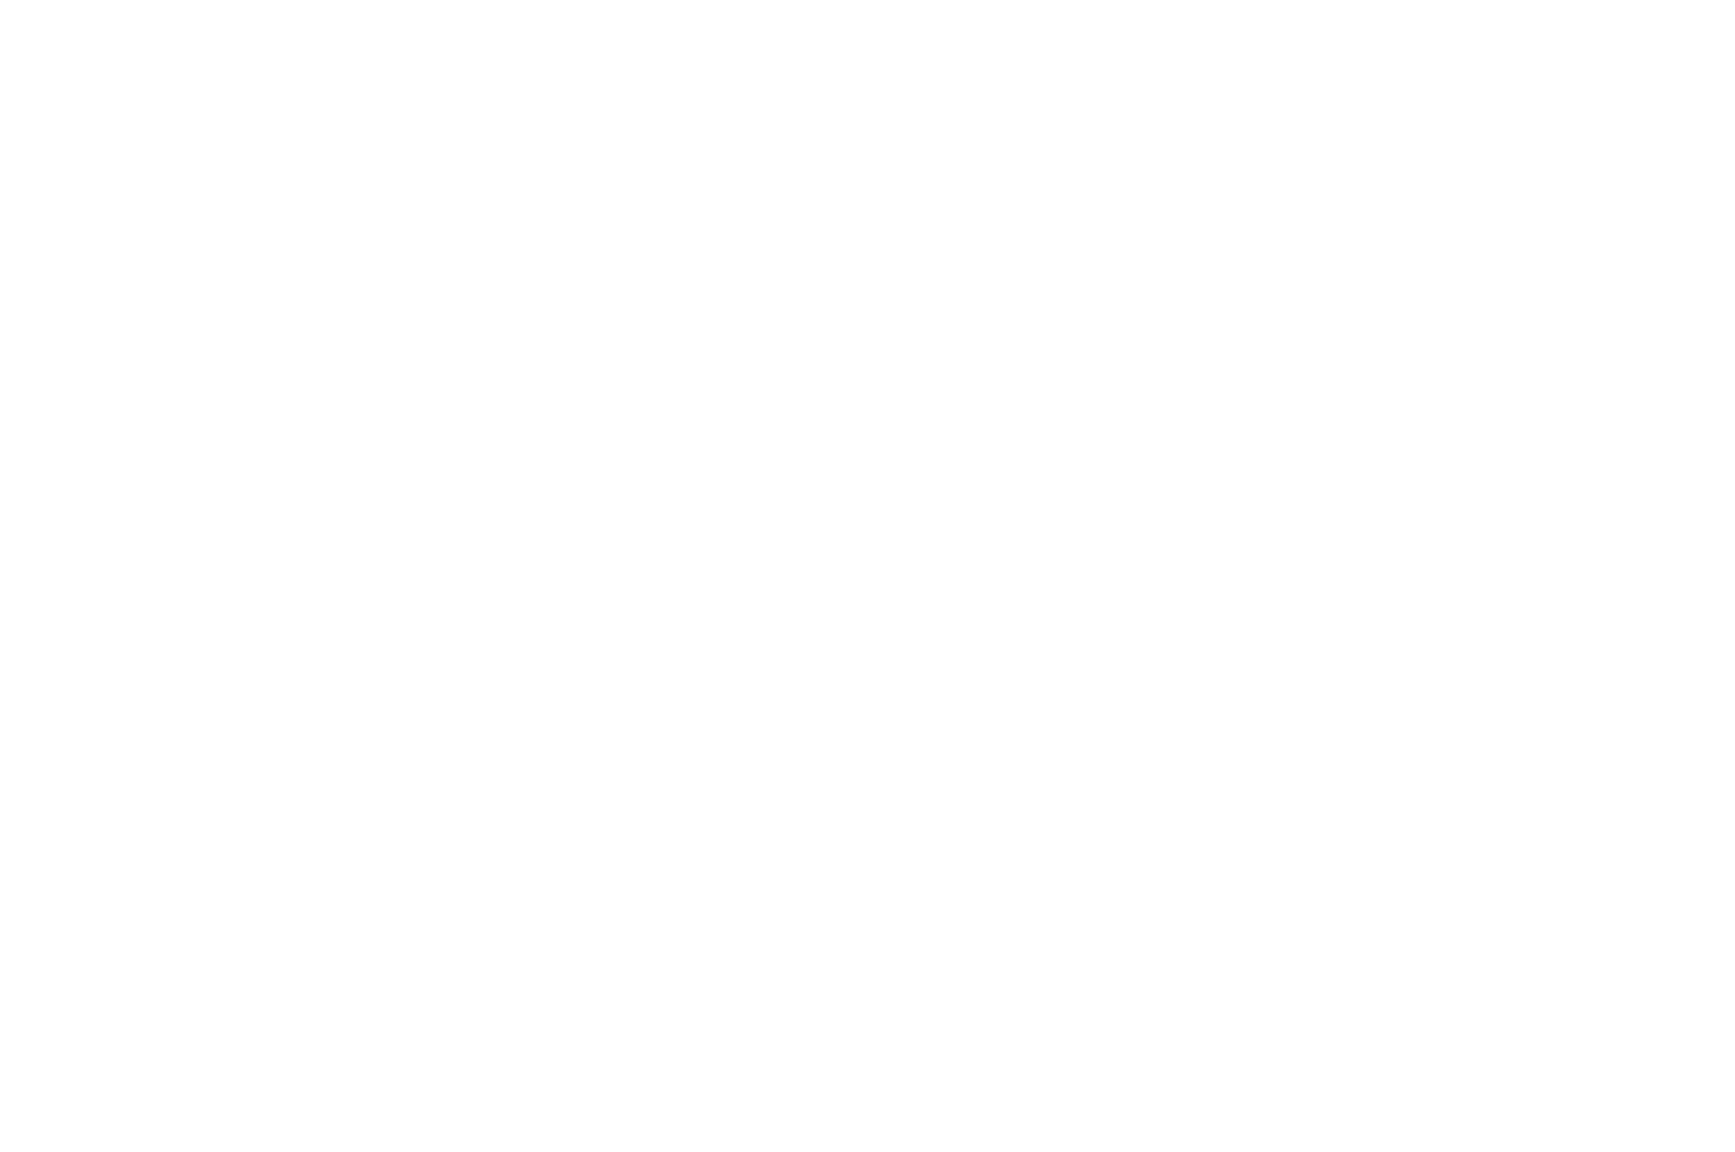 Out Here Now - Kansas City LGBT Film FestivalJune 23, 2018